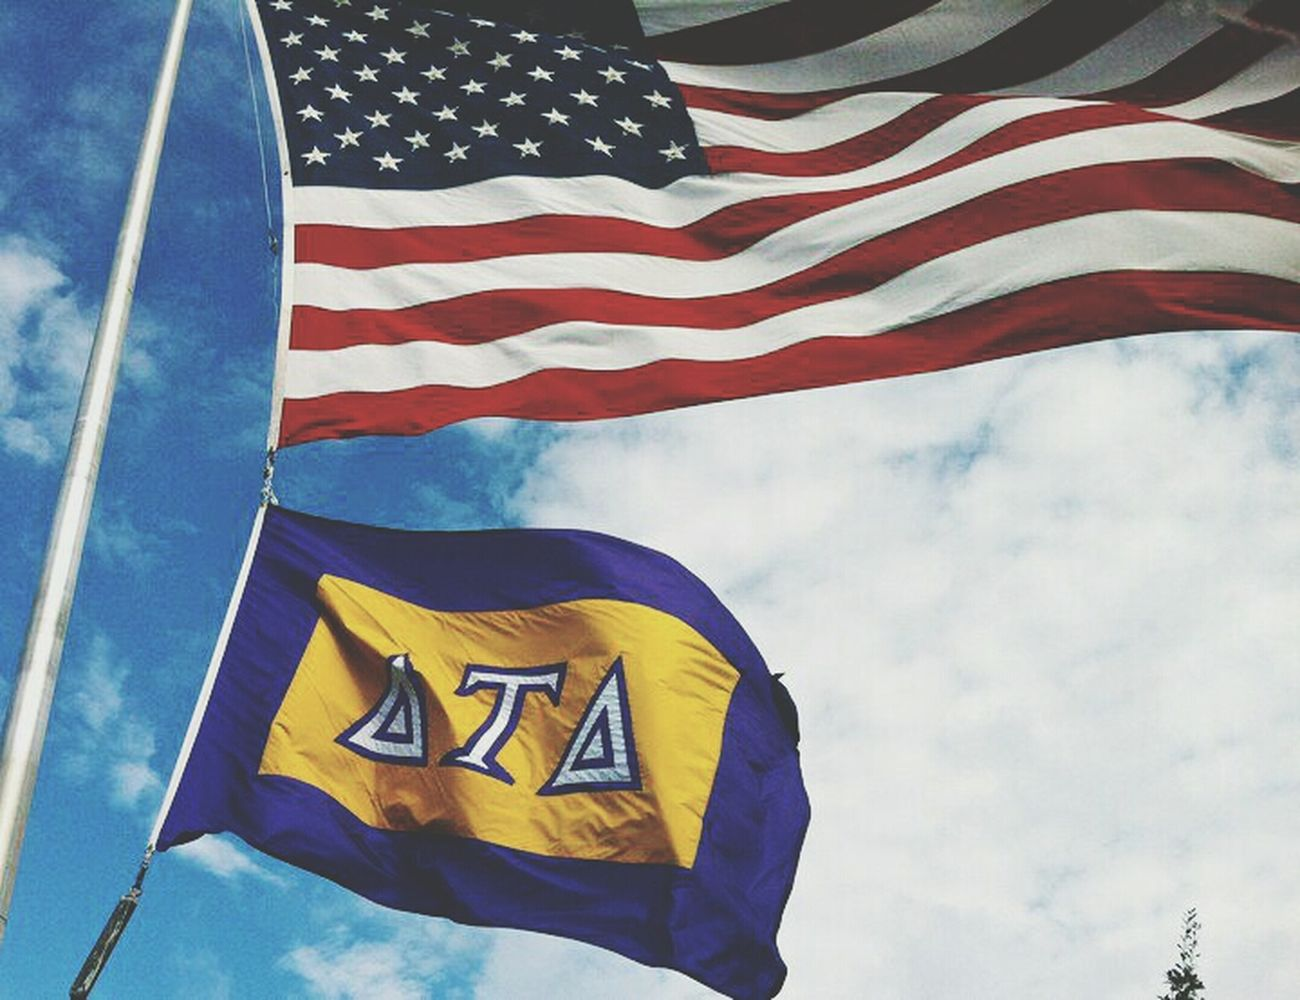 Delta Tau Delta First Eyeem Photo